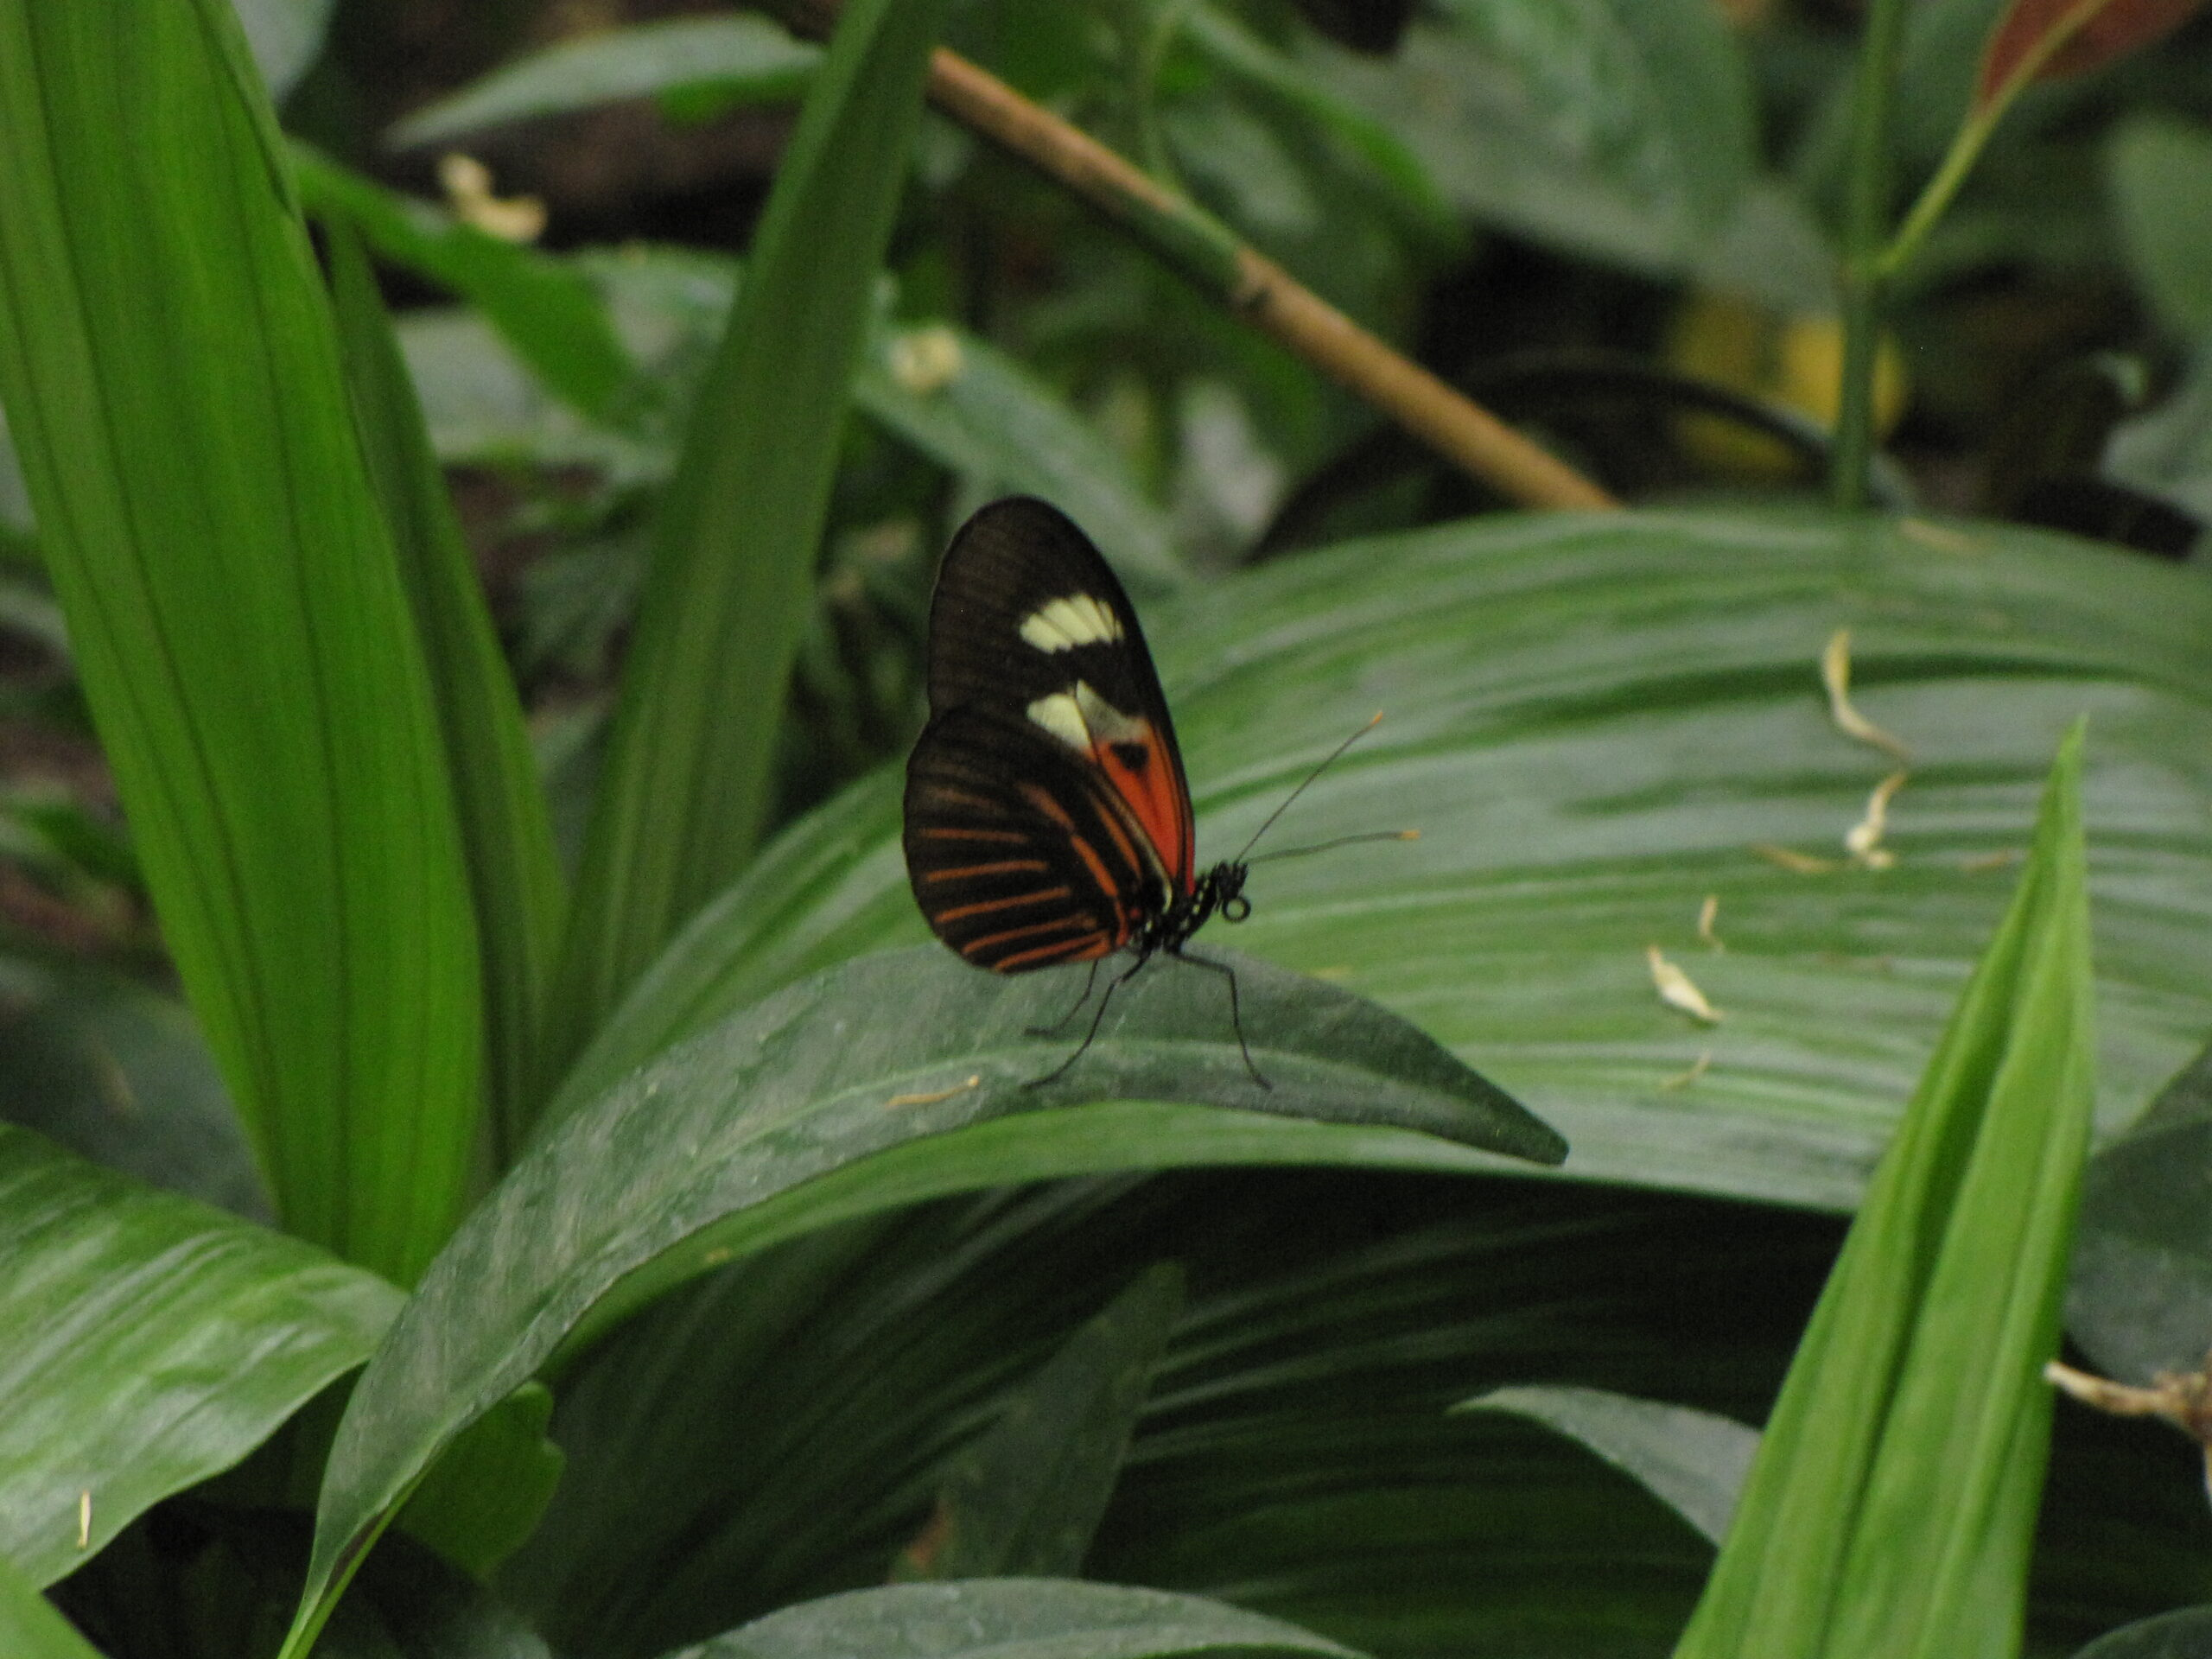 Butterflies are Blooming exhibit at Meijer Gardens